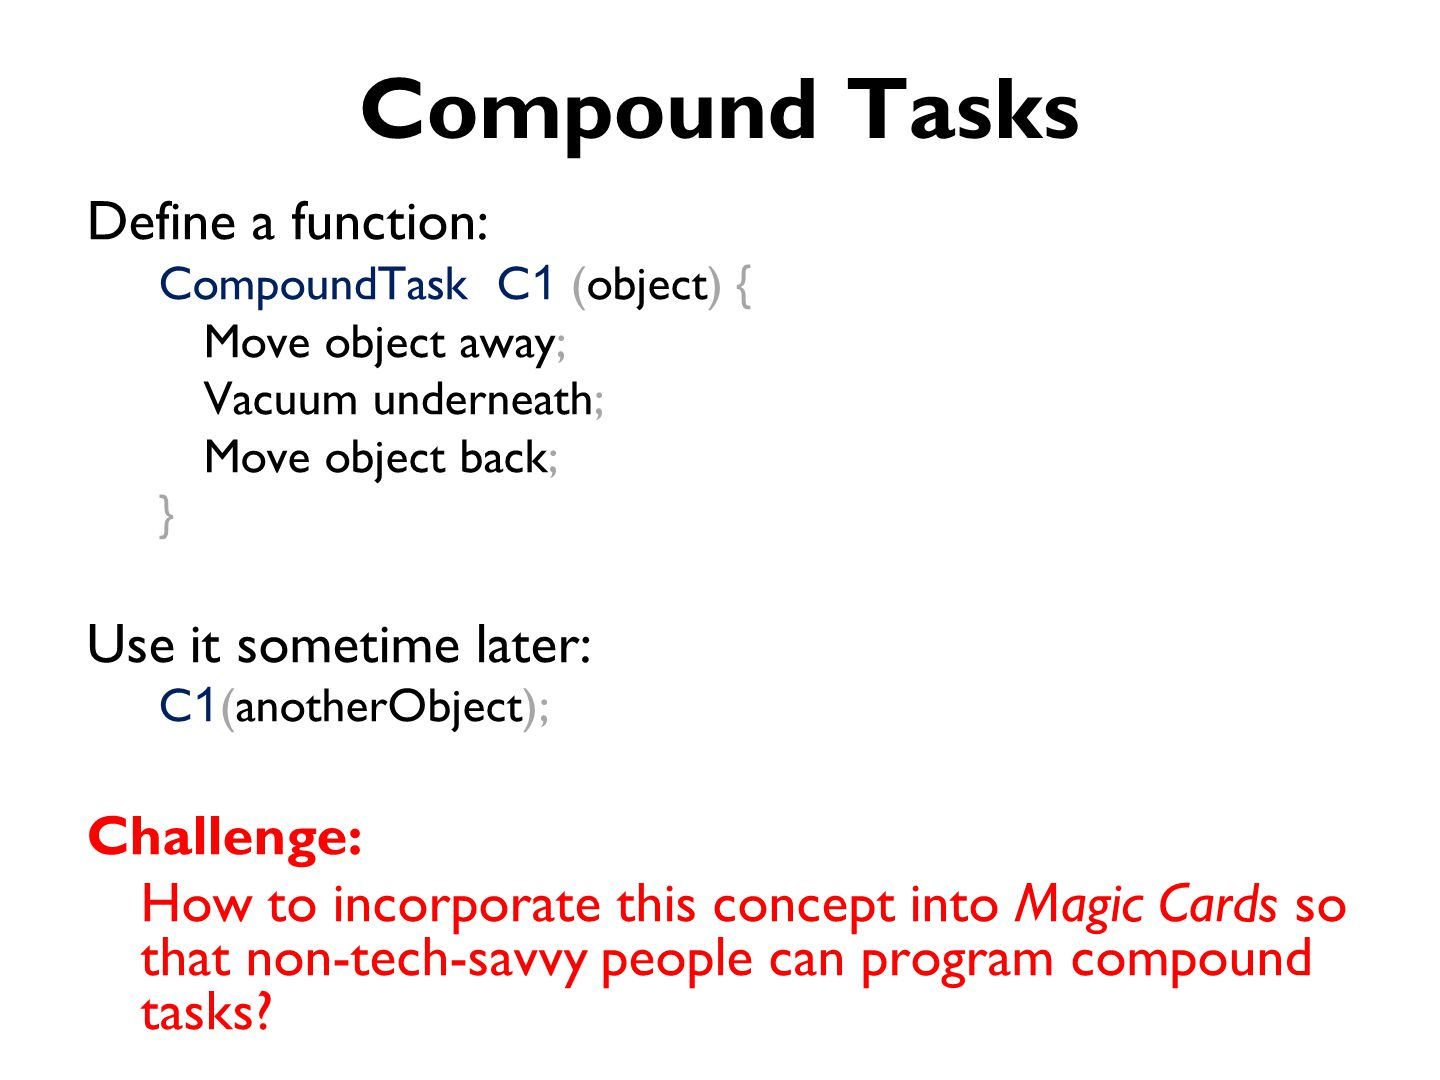 Compound Tasks Define a function: CompoundTask C 1 (object) { Move object away; Vacuum underneath; Move object back; } Use it sometime later: C 1 (anotherObject); Challenge: How to incorporate this concept into Magic Cards so that non-tech-savvy people can program compound tasks?